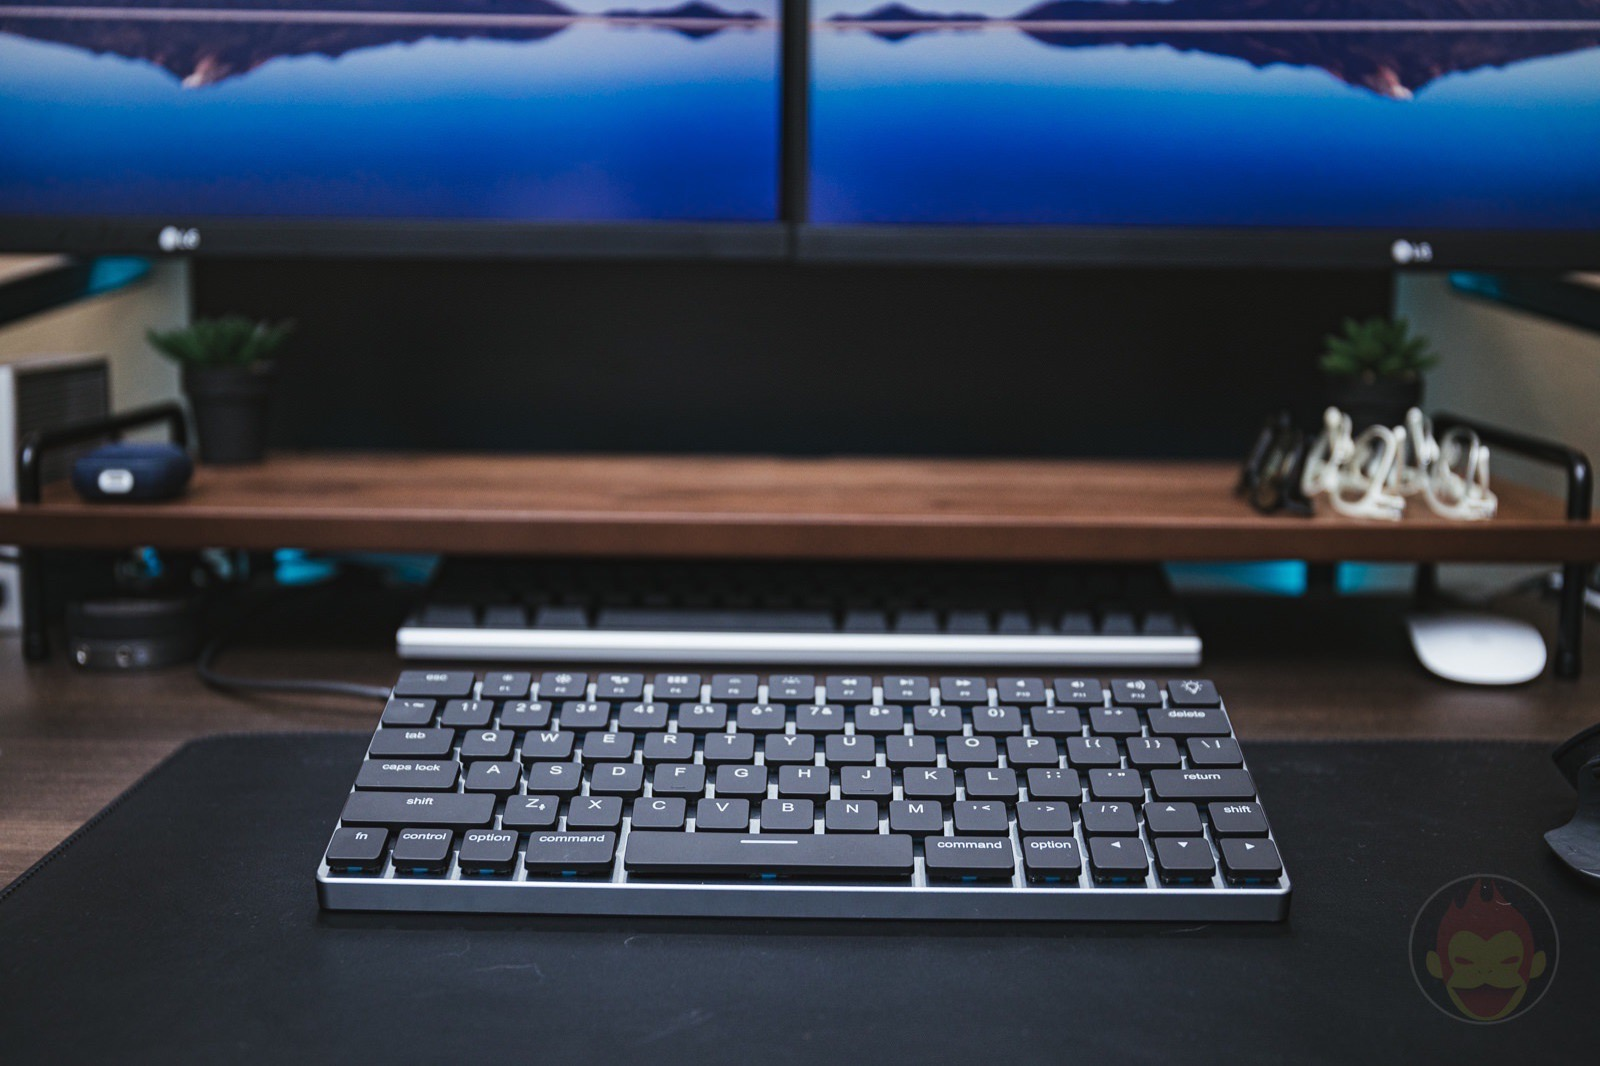 Vinpok Taptek Wireless Keyboard Review 3 09